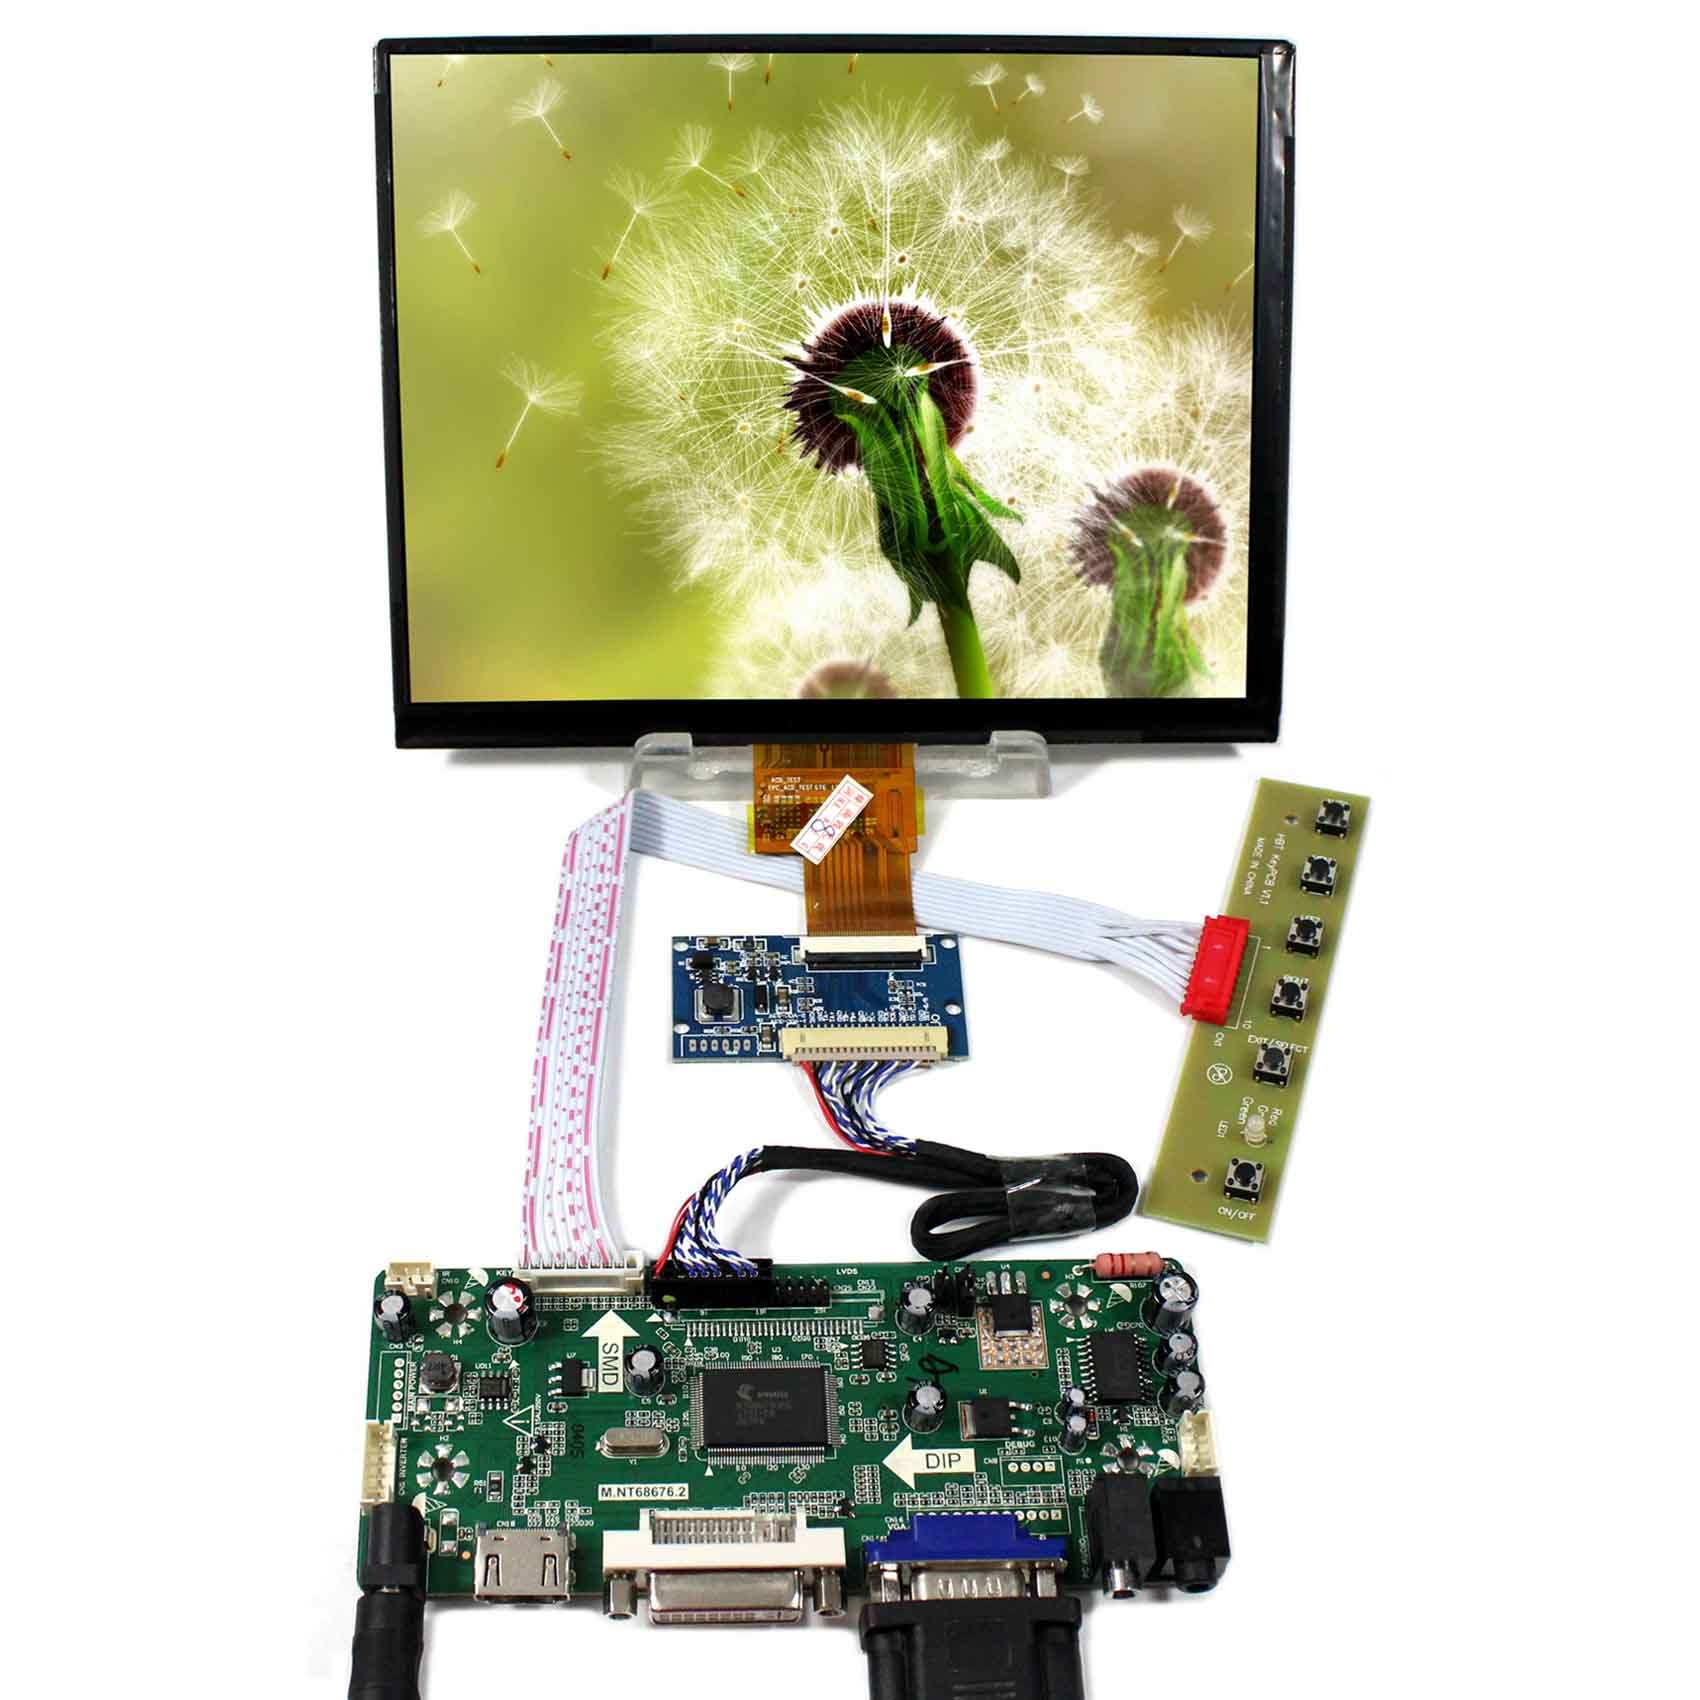 HDMI+DVI+VGA+Audio LCD Control Board+8inch 1024x768 HJ080IA-01E IPS LCD Panel hdmi vga av audio usb control board 8inch hj080ia 01e 1024 768 ips lcd panel screen model lcd for raspberry pi